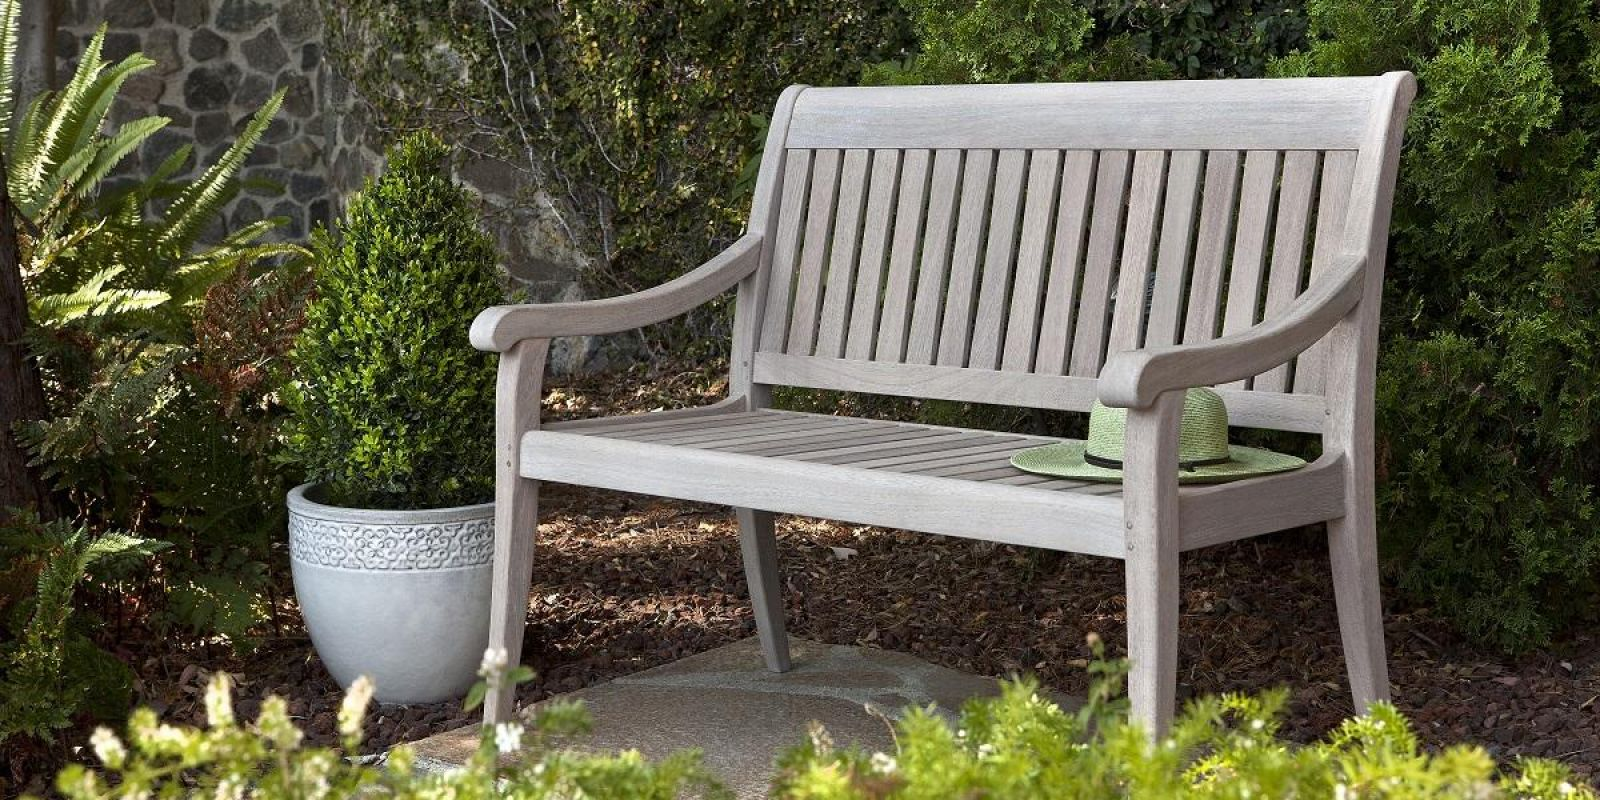 Outdoor Furniture | American Casual Living on Porch & Patio Casual Living id=30723